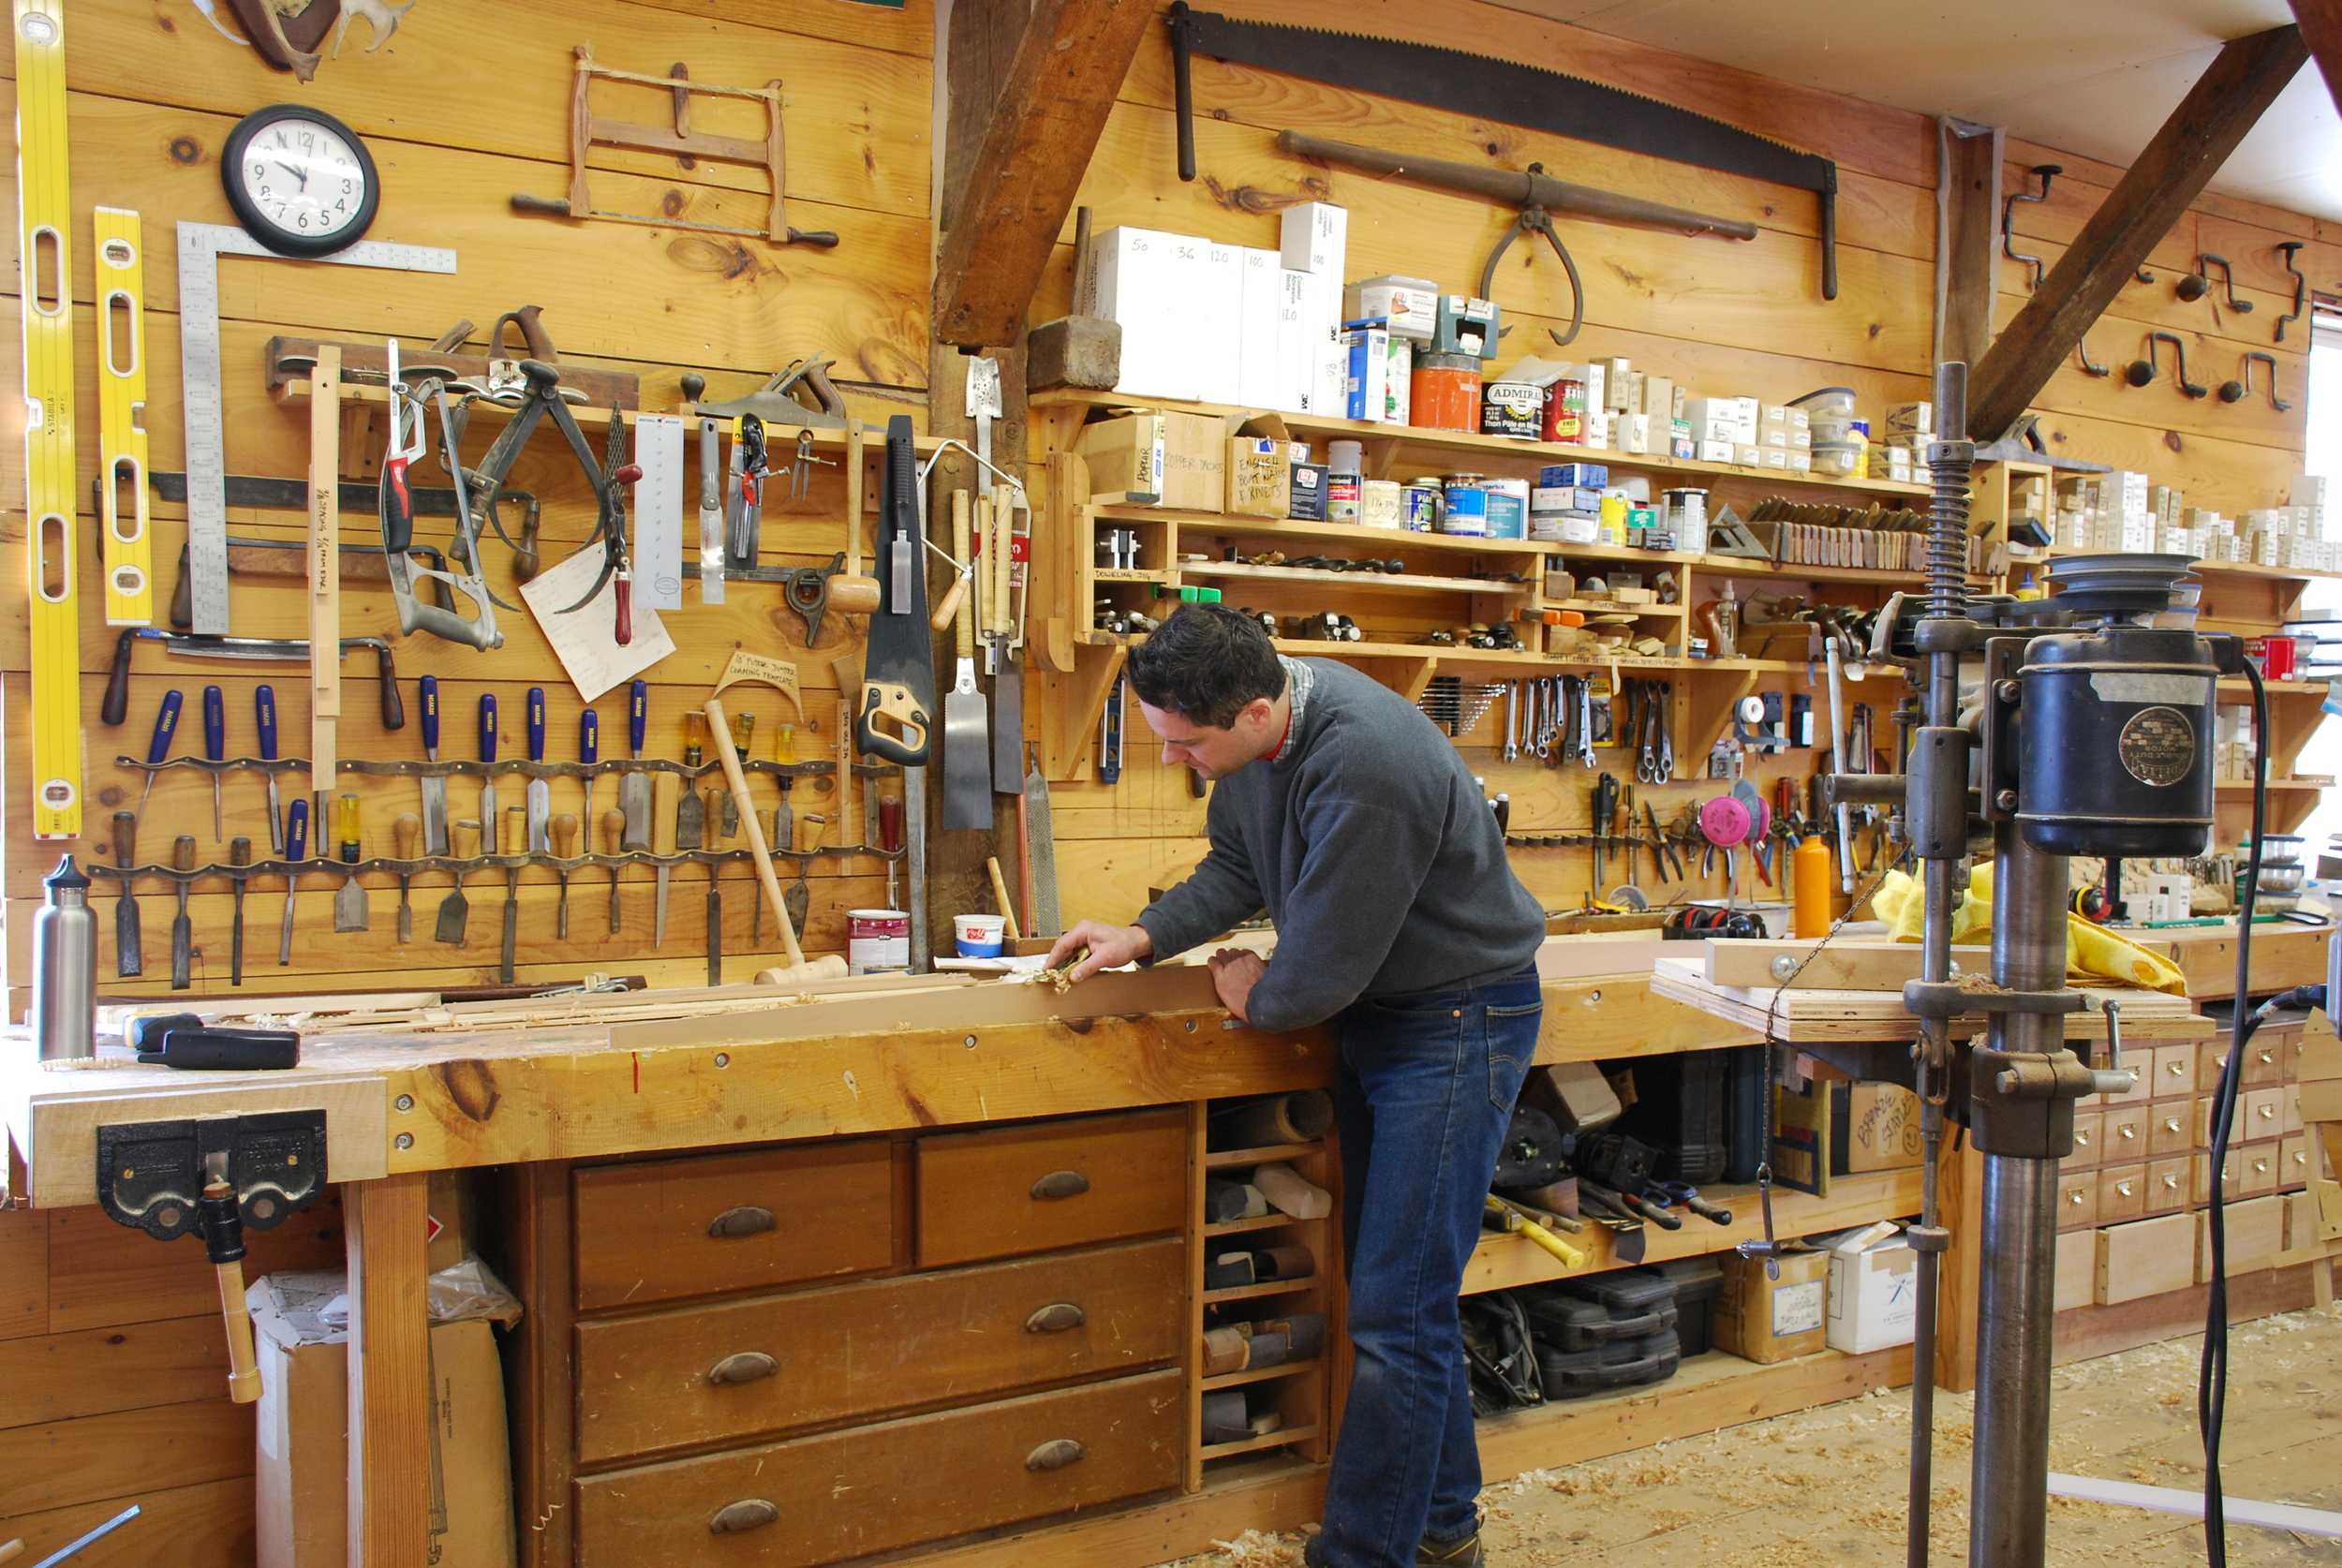 Dylan shaping a section of the goring at the work bench.